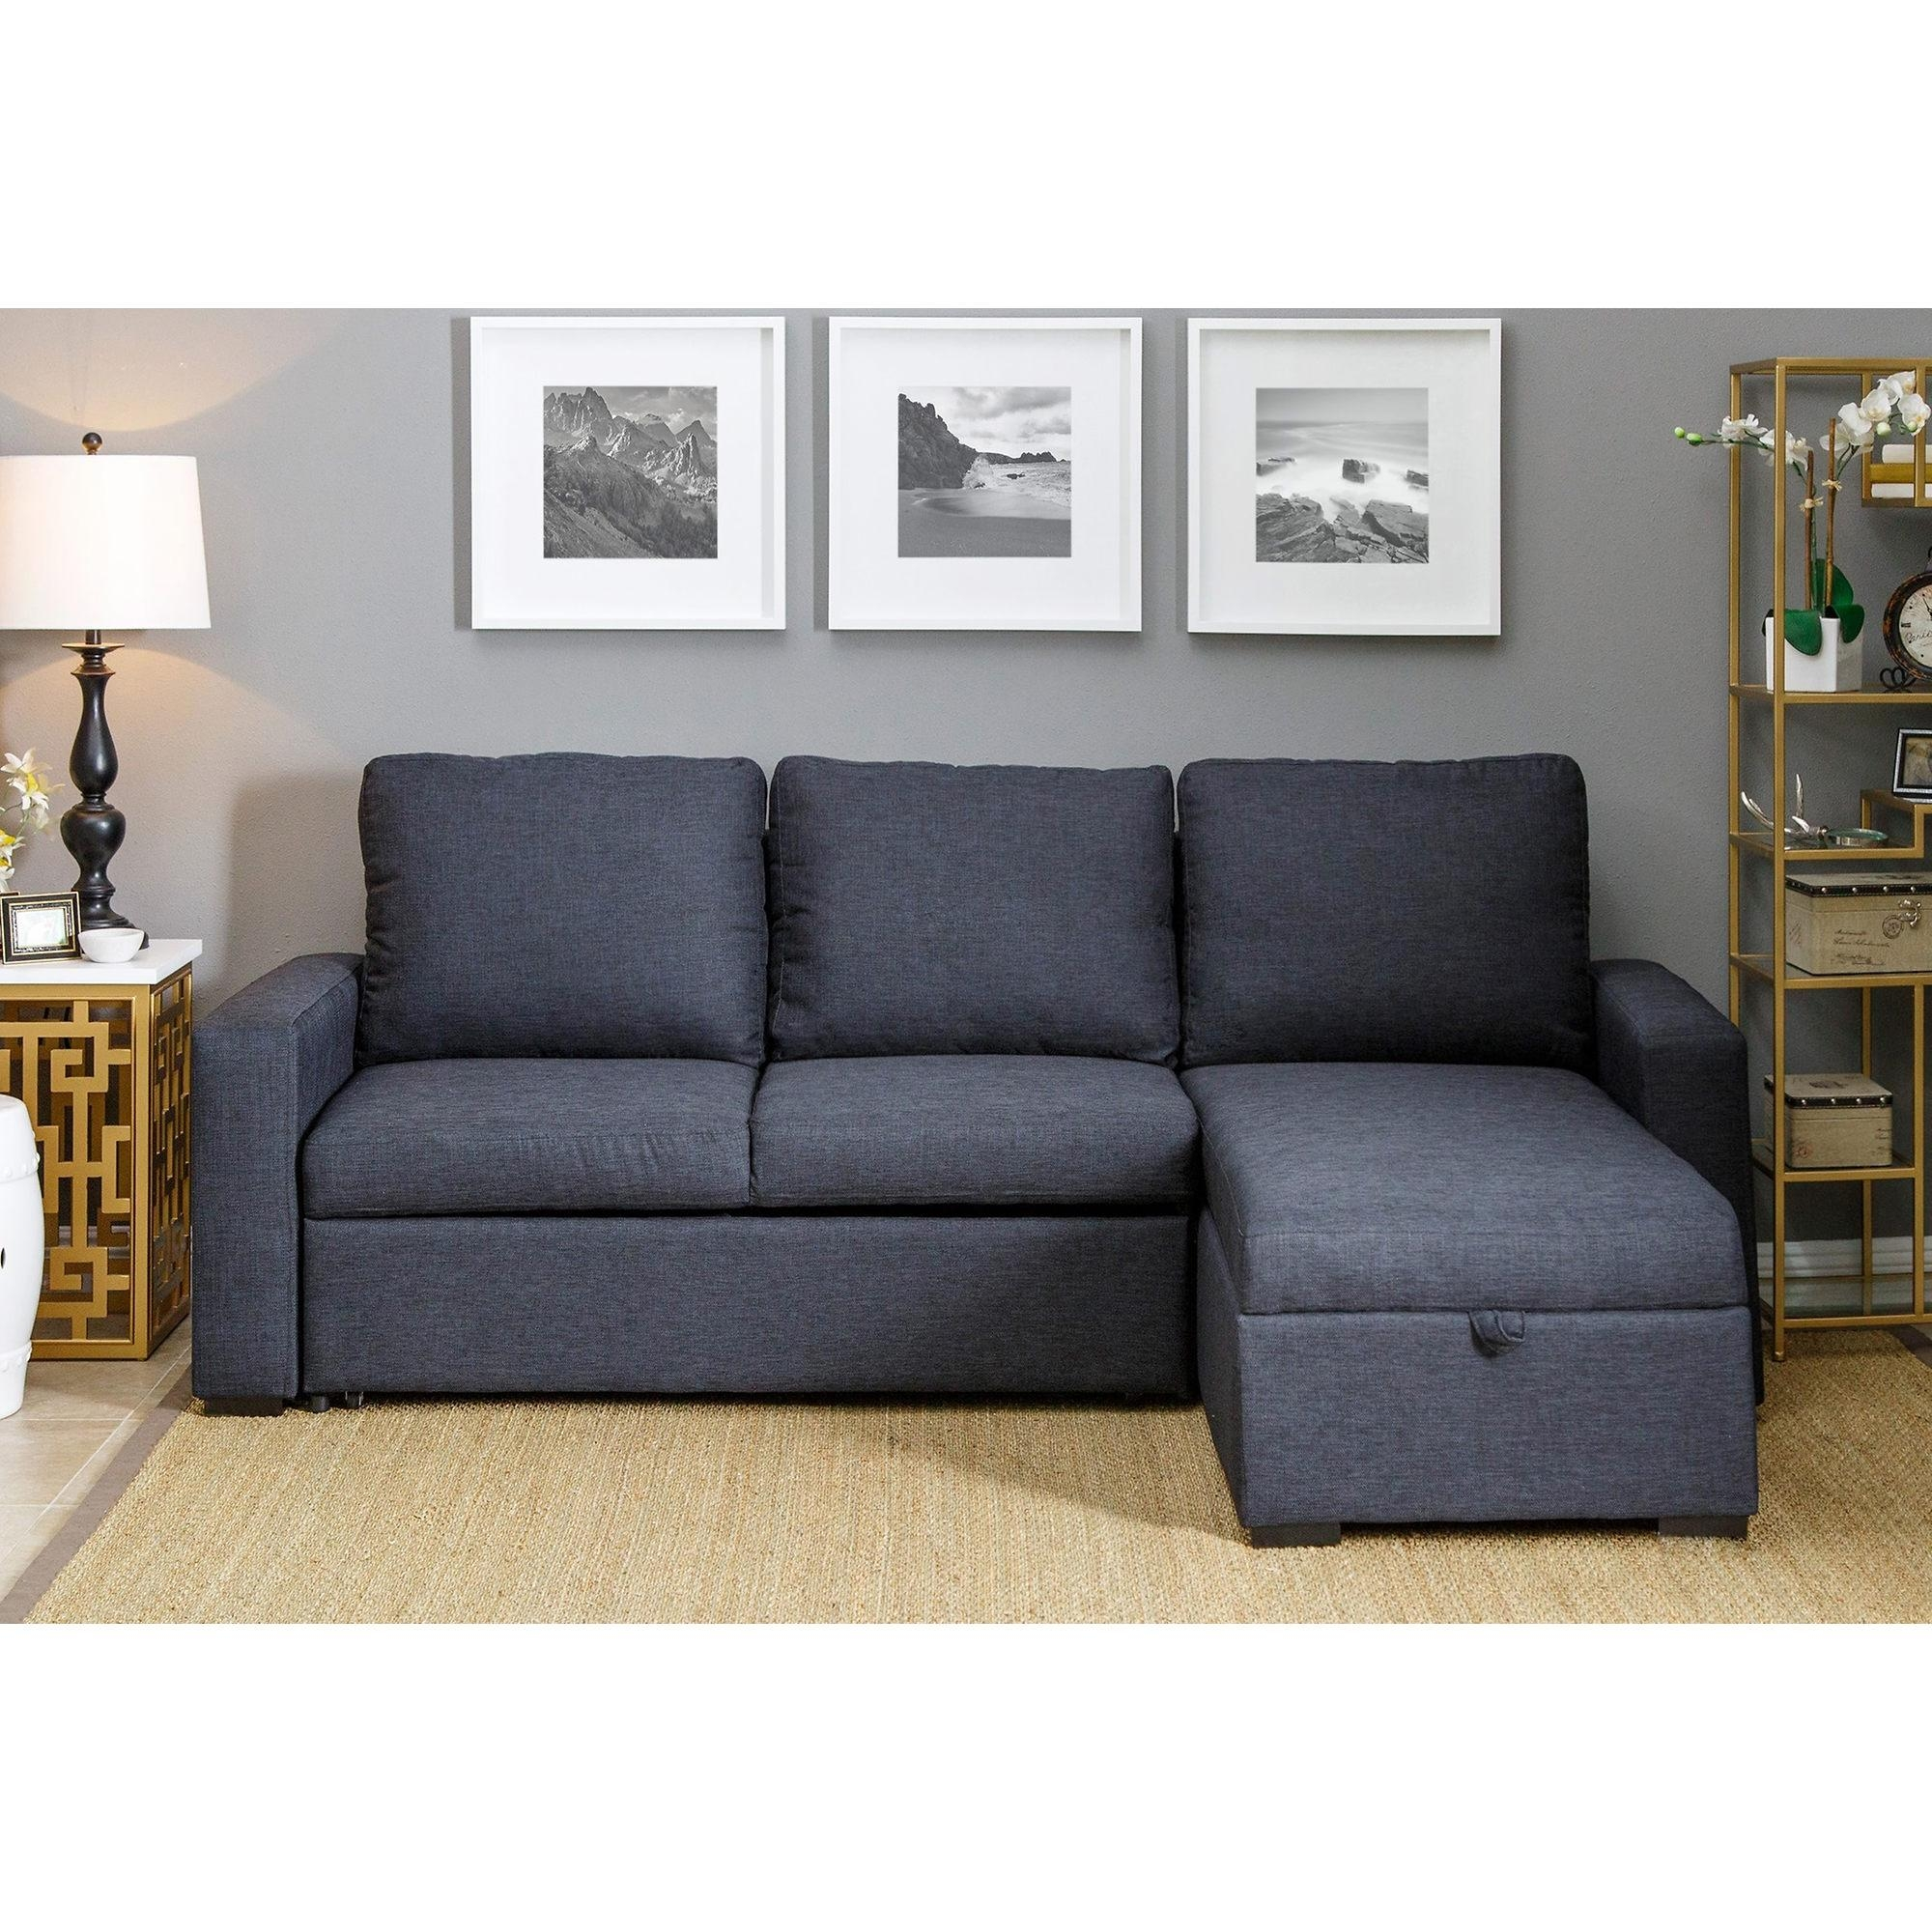 Sofas Center : Beautiful Abbyson Living Charlotte Beigeal Sofa And For Abbyson Living Sectionals (Image 15 of 15)